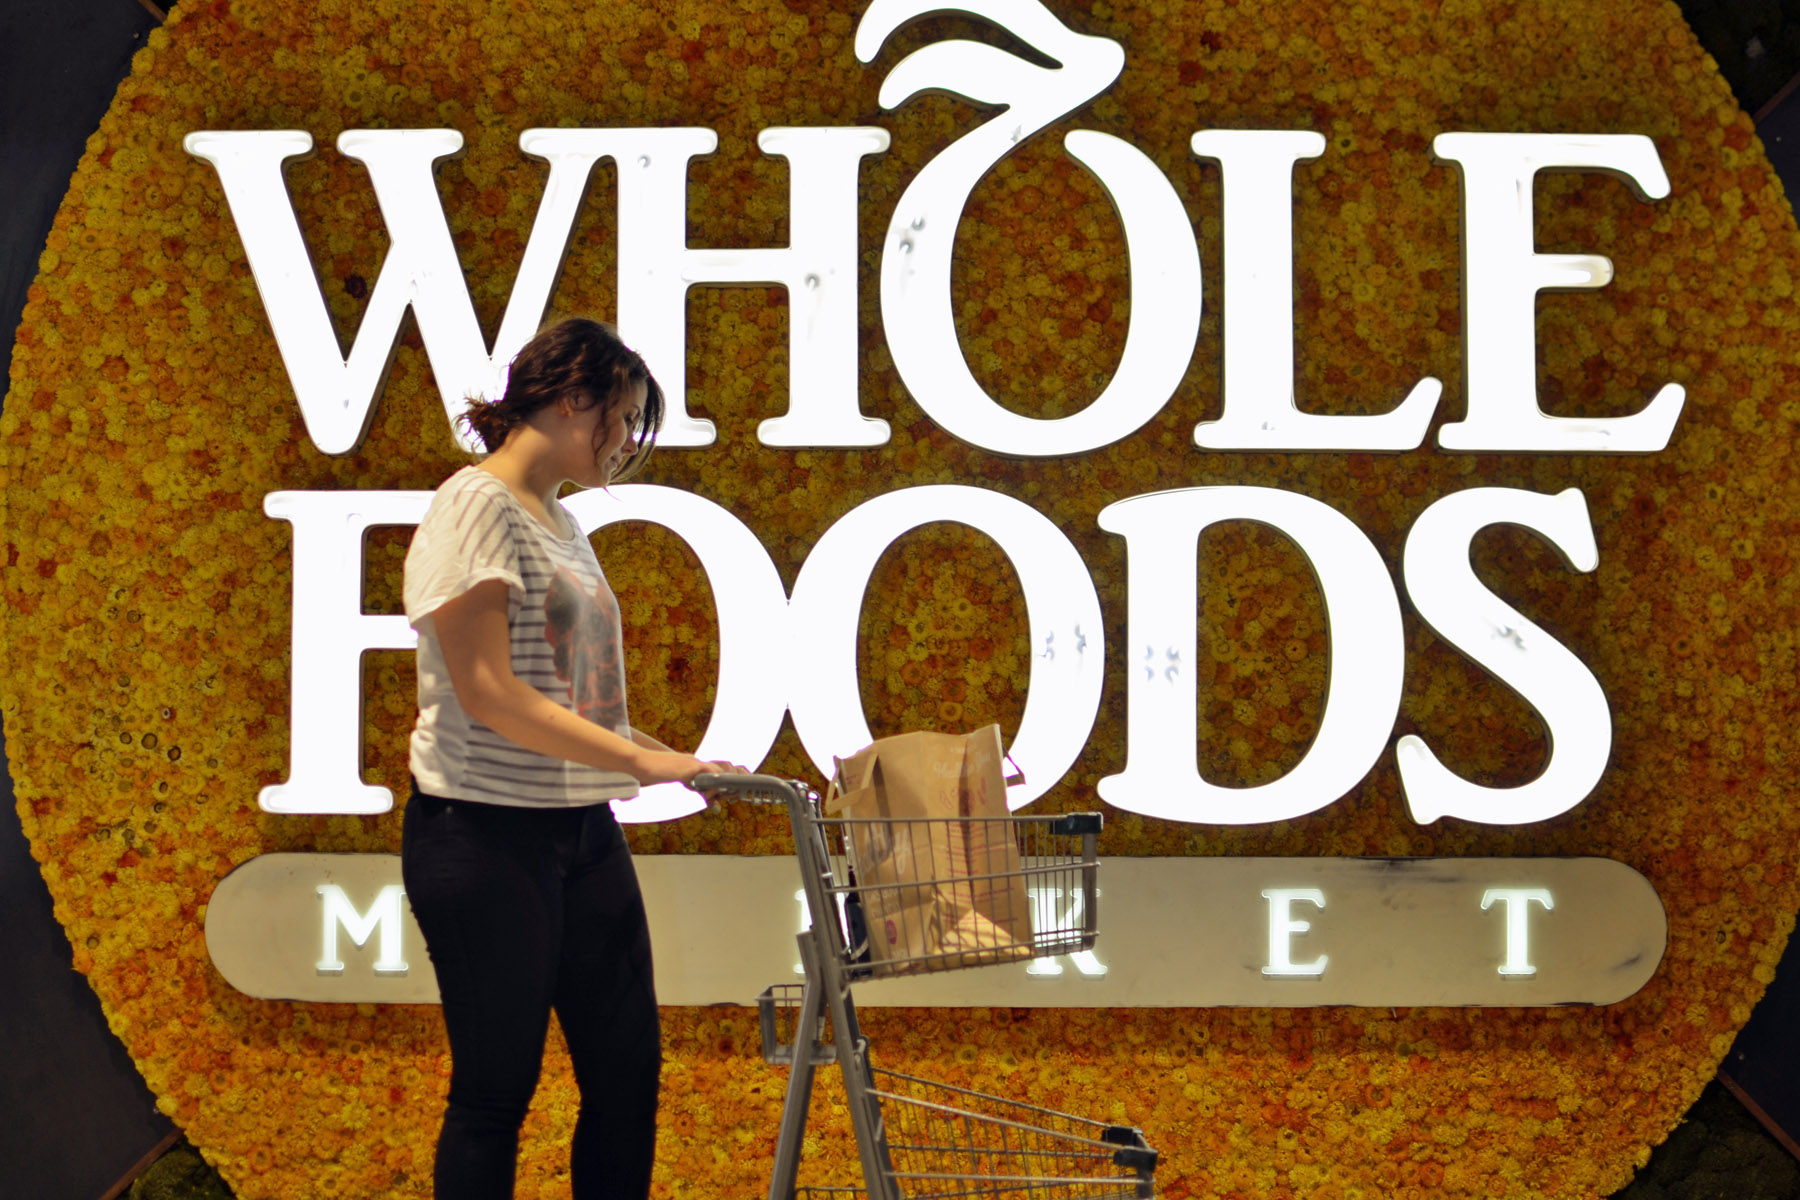 Whole Foods prices to get cheaper, says Amazon